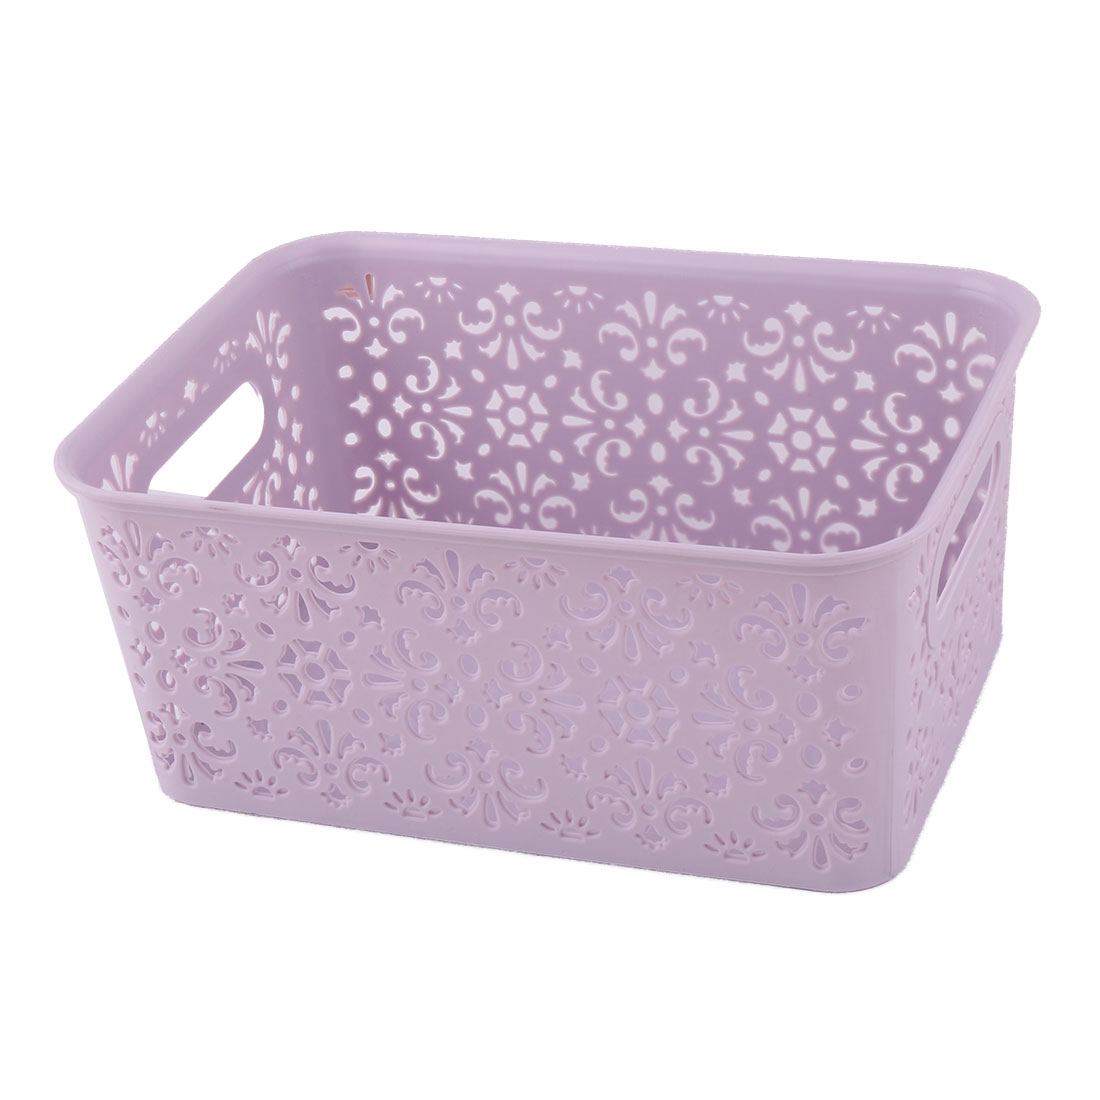 Plastic Hollow Out Design Sundries Cosmetics Organizer Storage Basket Purple